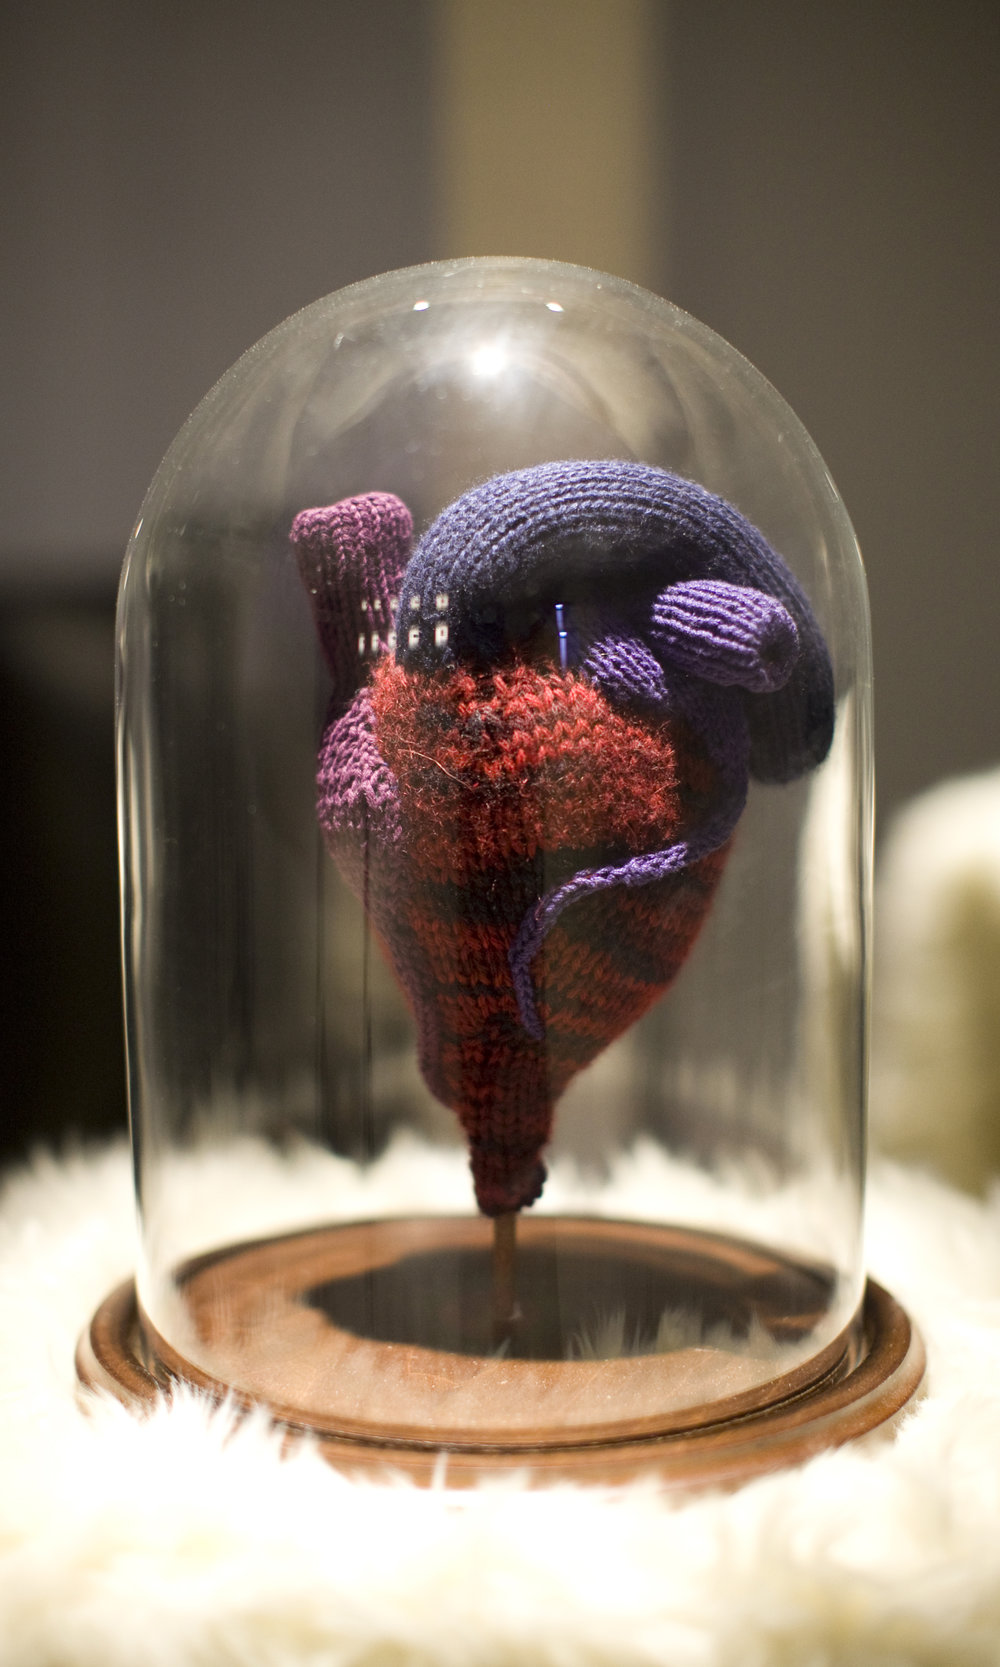 Heart+in+jar_photo+cred+Chase-300x500.jpg